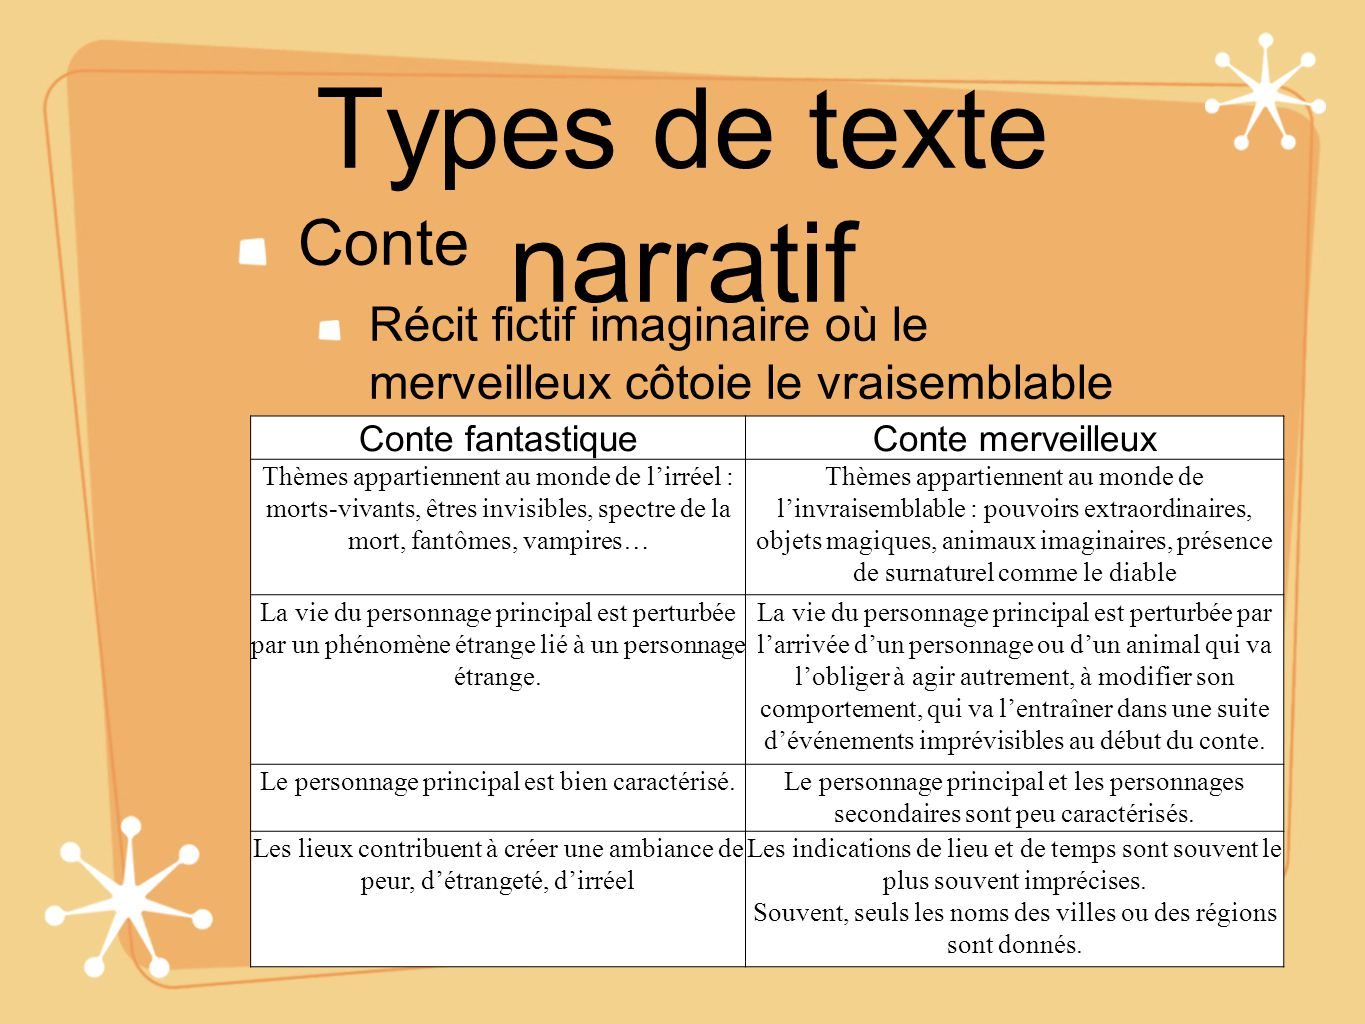 Types de texte narratif